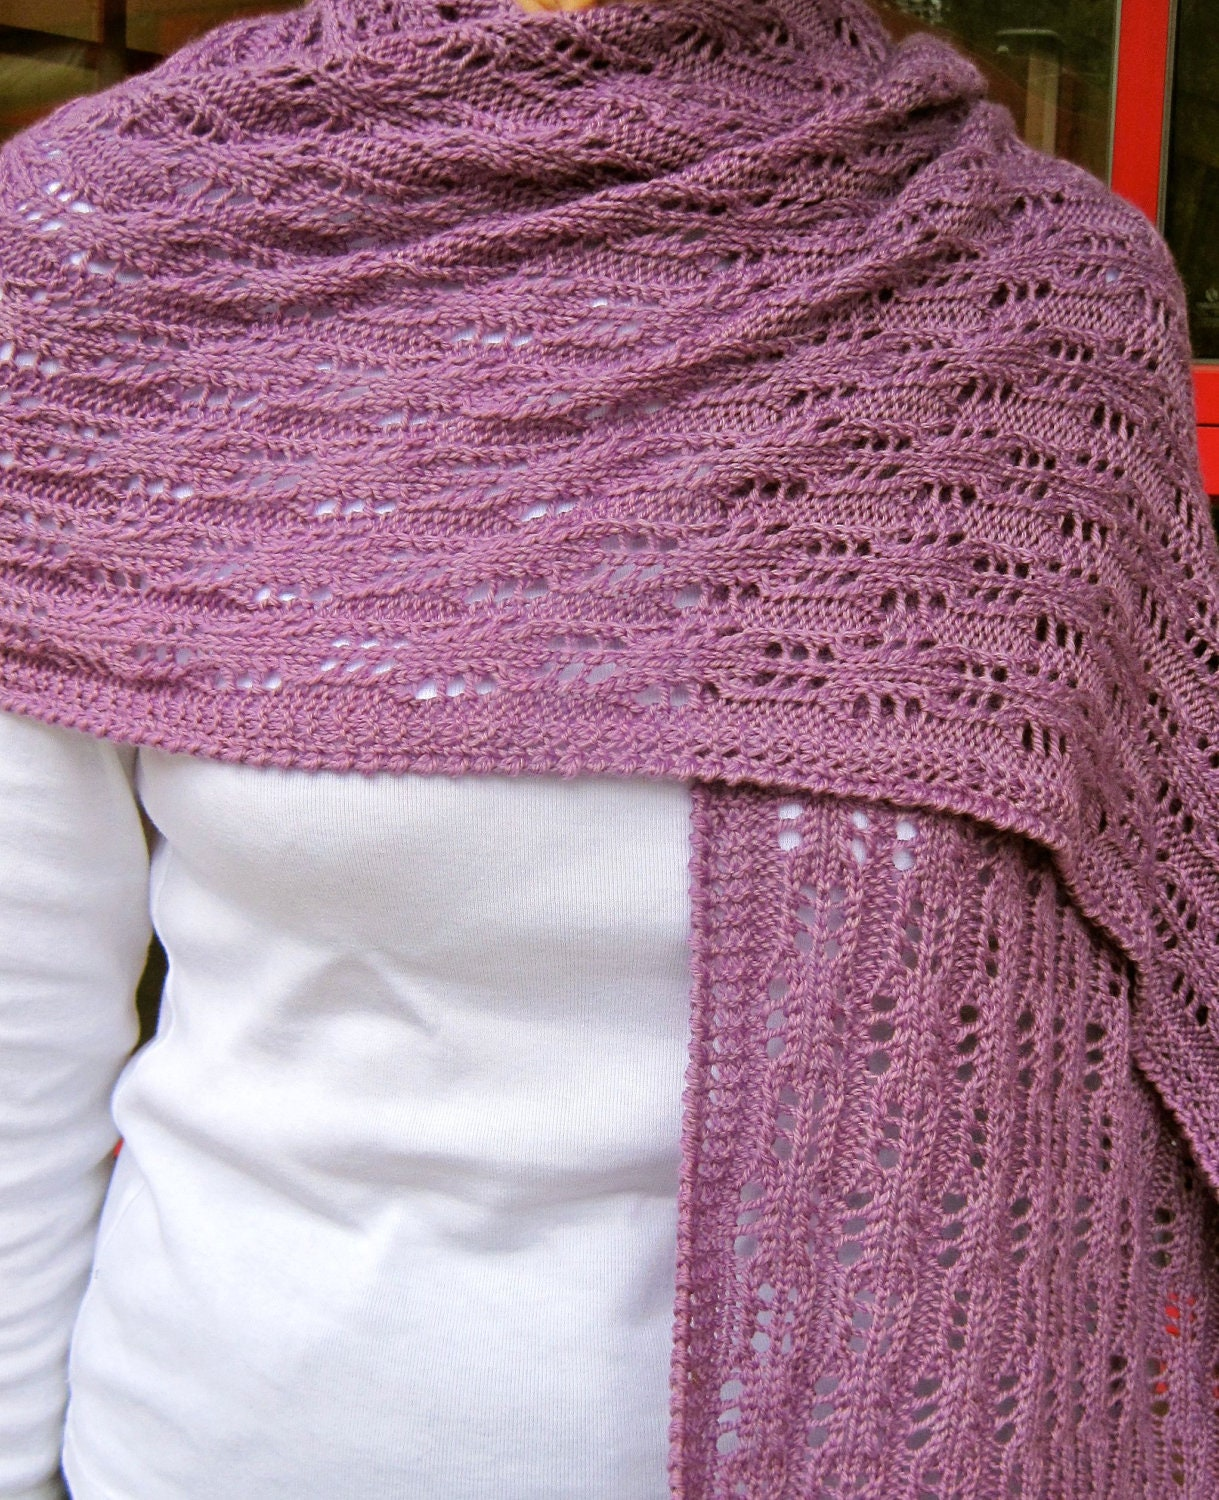 Knit Wrap Pattern: Easy Eyelet Lace Shawl by WearableArtEmporium